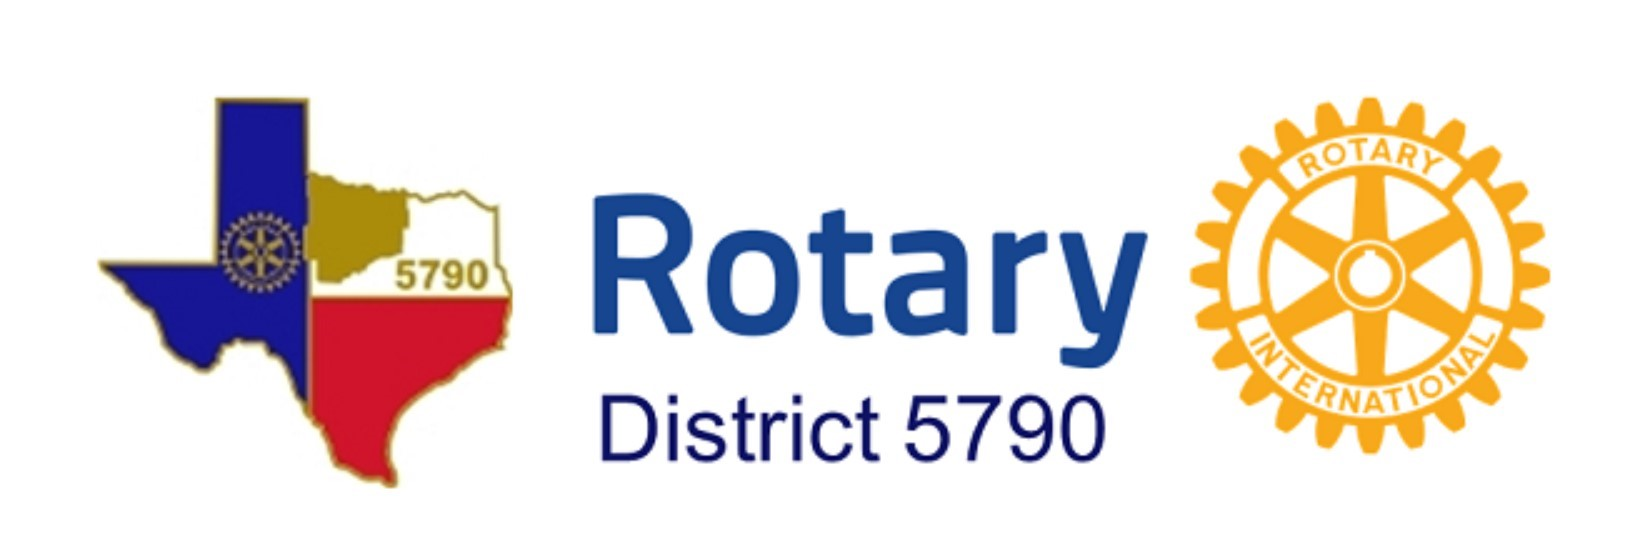 District 5790 logo